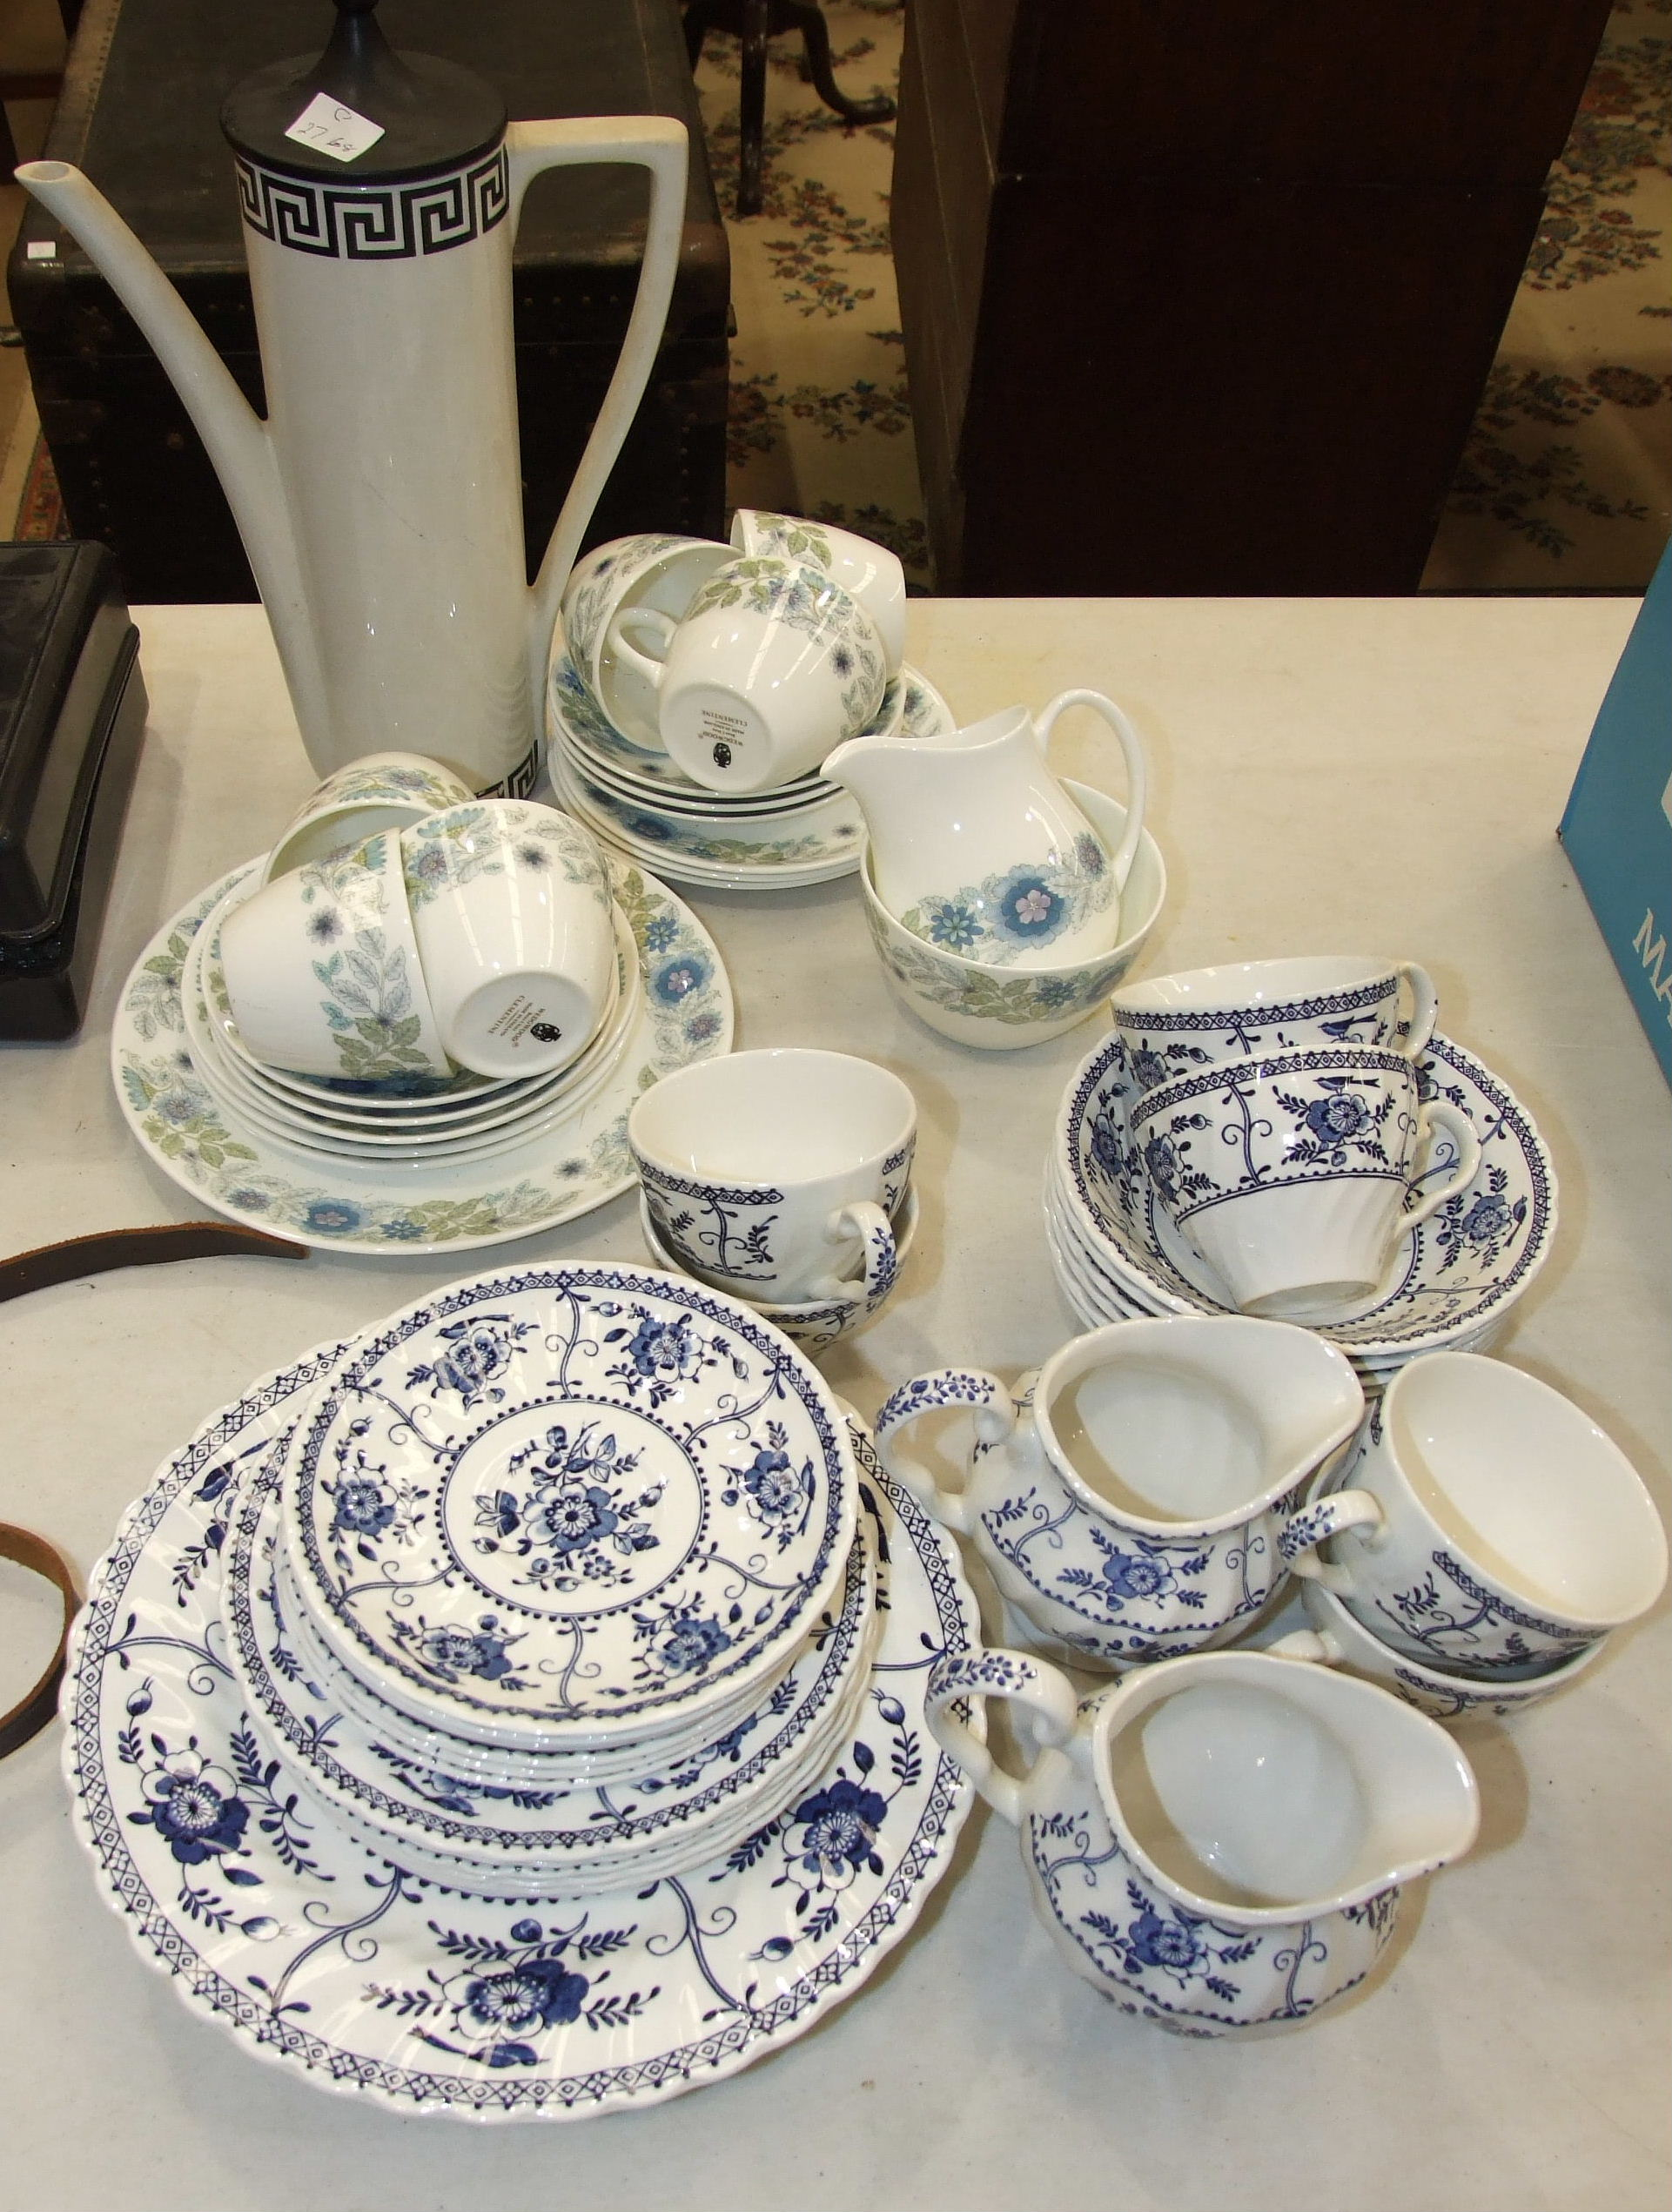 Nineteen pieces of Wedgwood 'Clementine' tea ware, thirty-two pieces of Johnson Bros 'Indies' tea